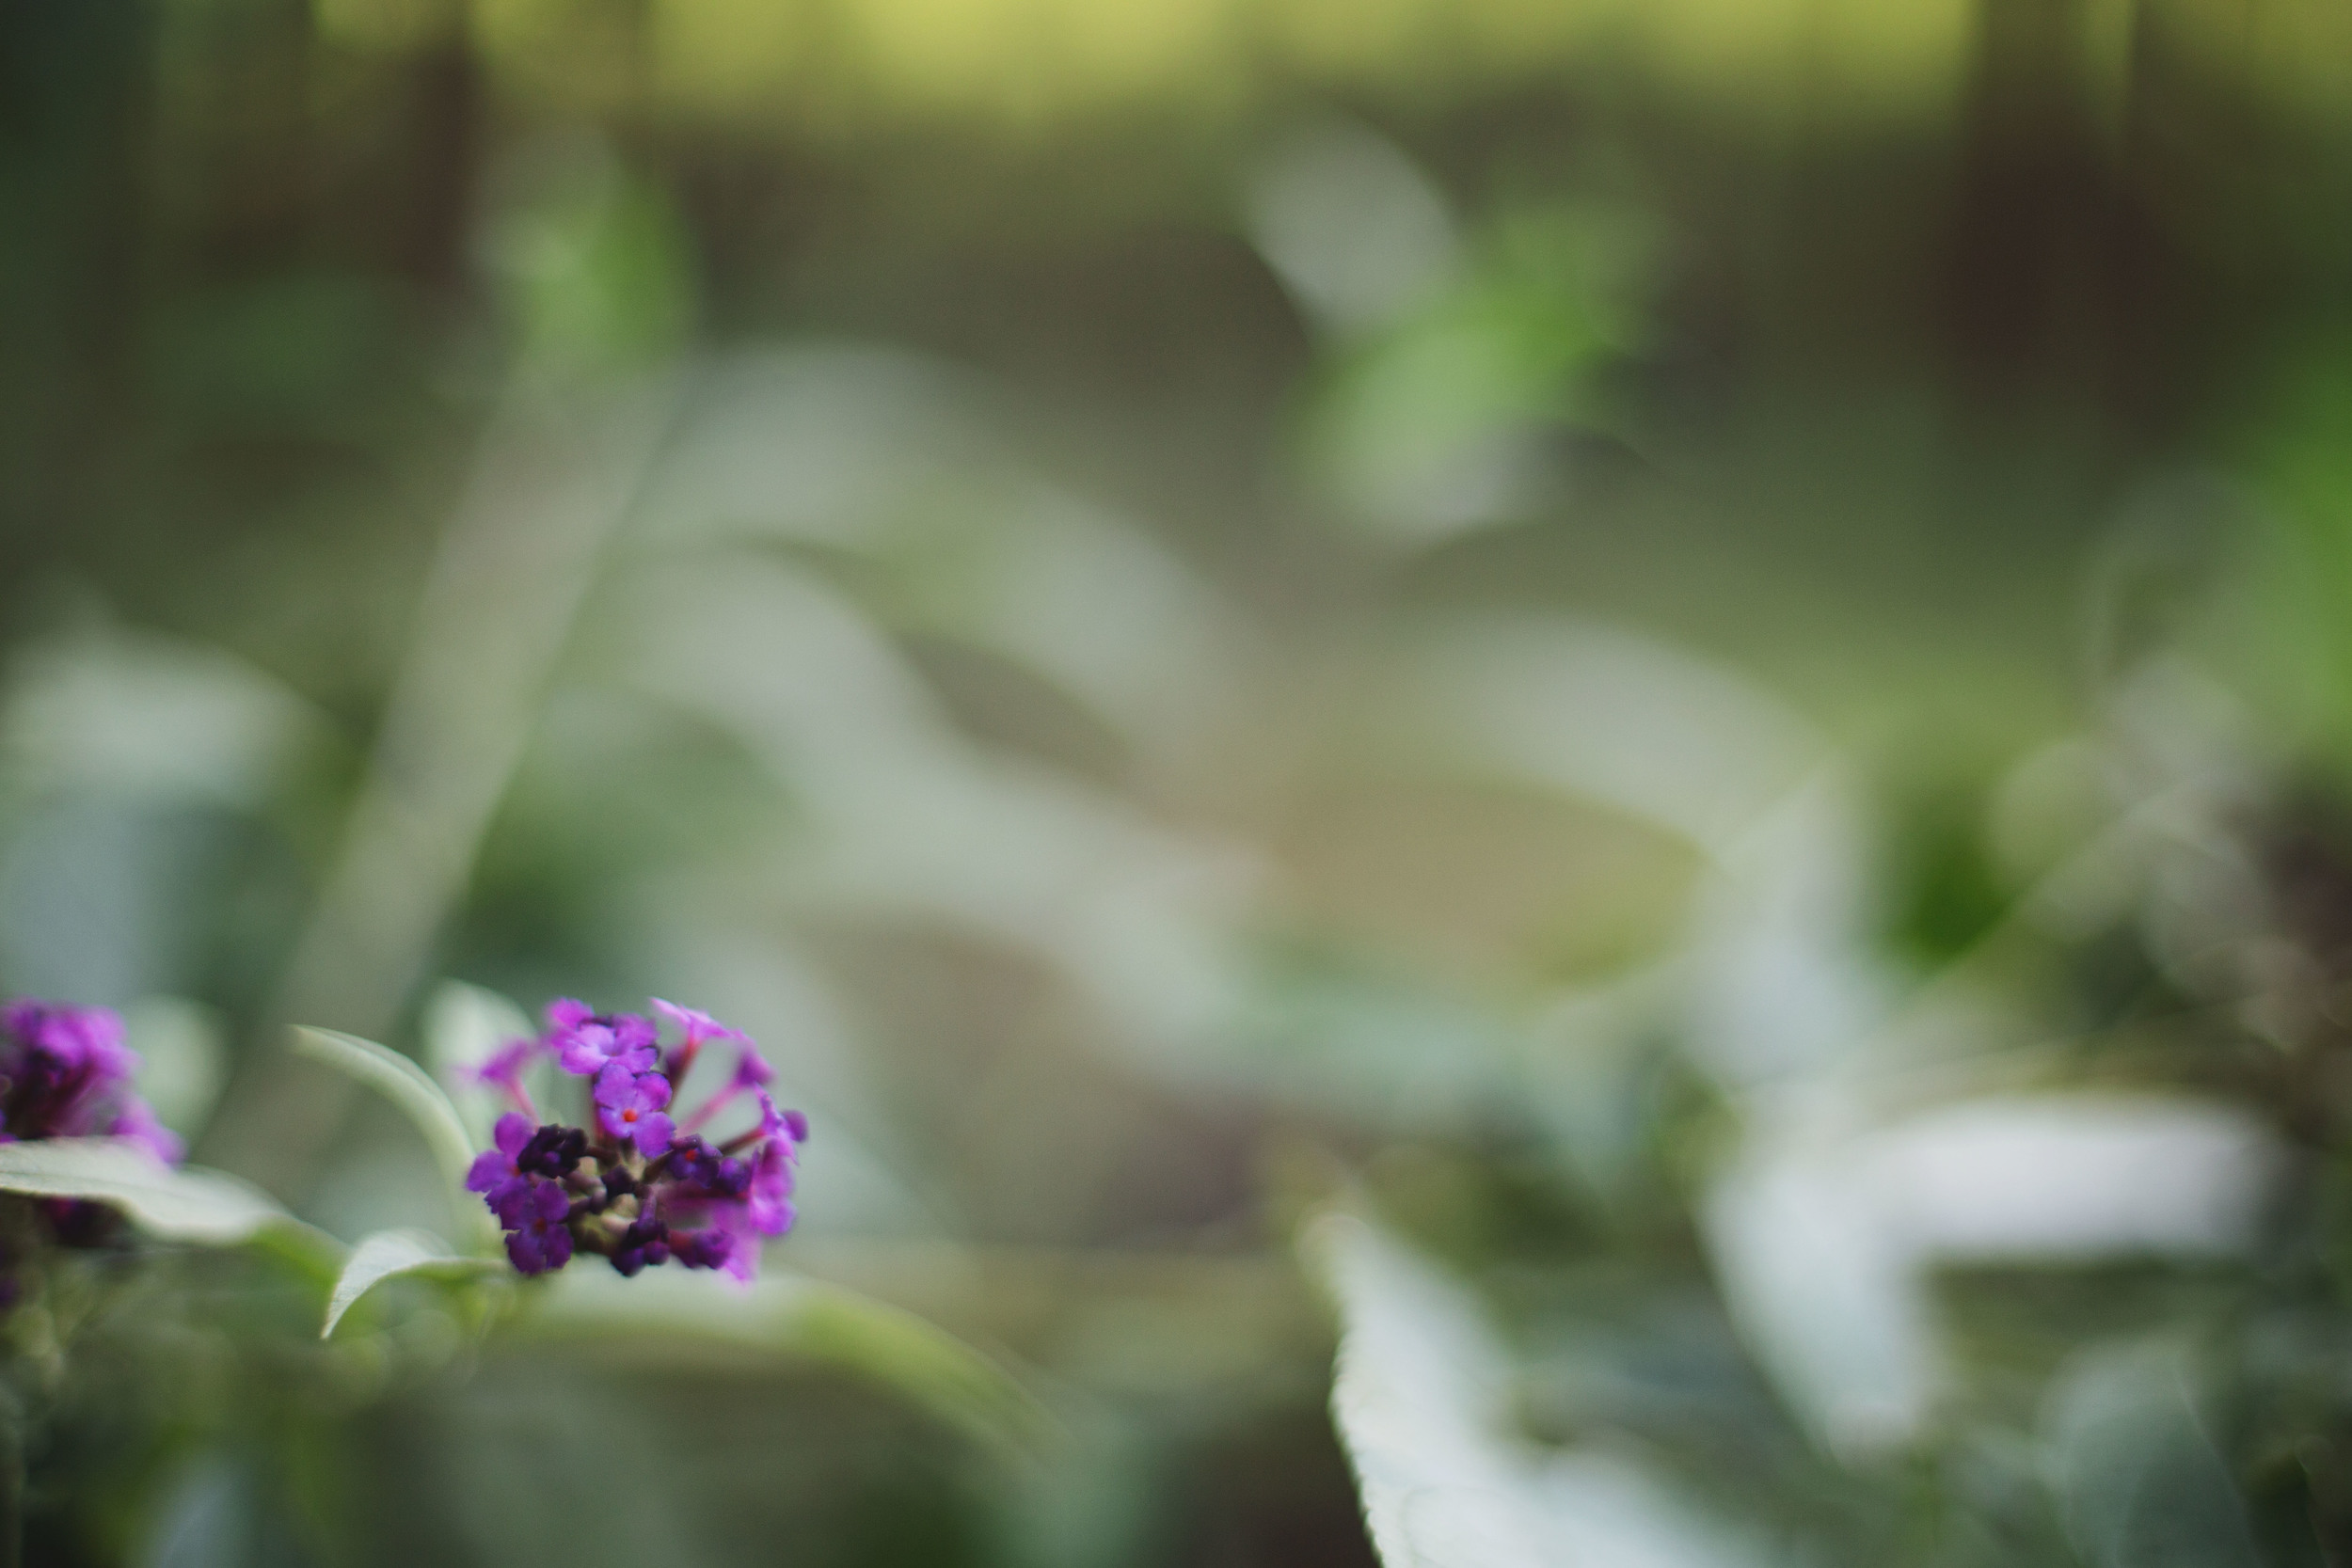 I finally tried freelensing and definitely see what the fuss is about! More experiments to come.